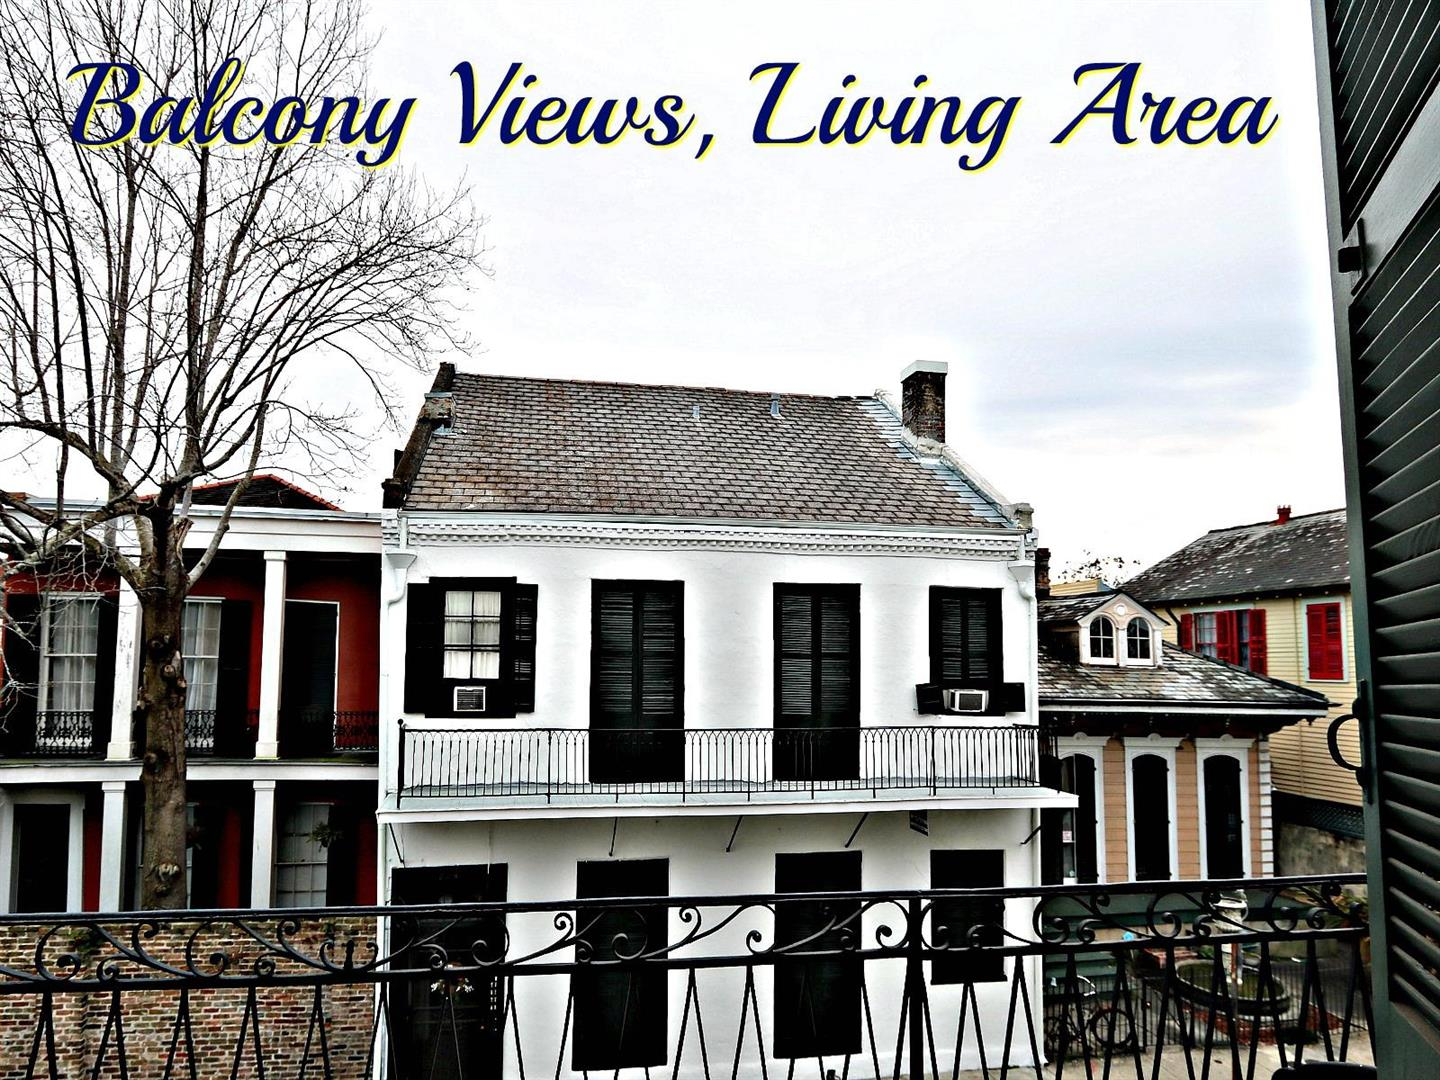 1225BourbonSt.BalconyViewsLiving.jpg